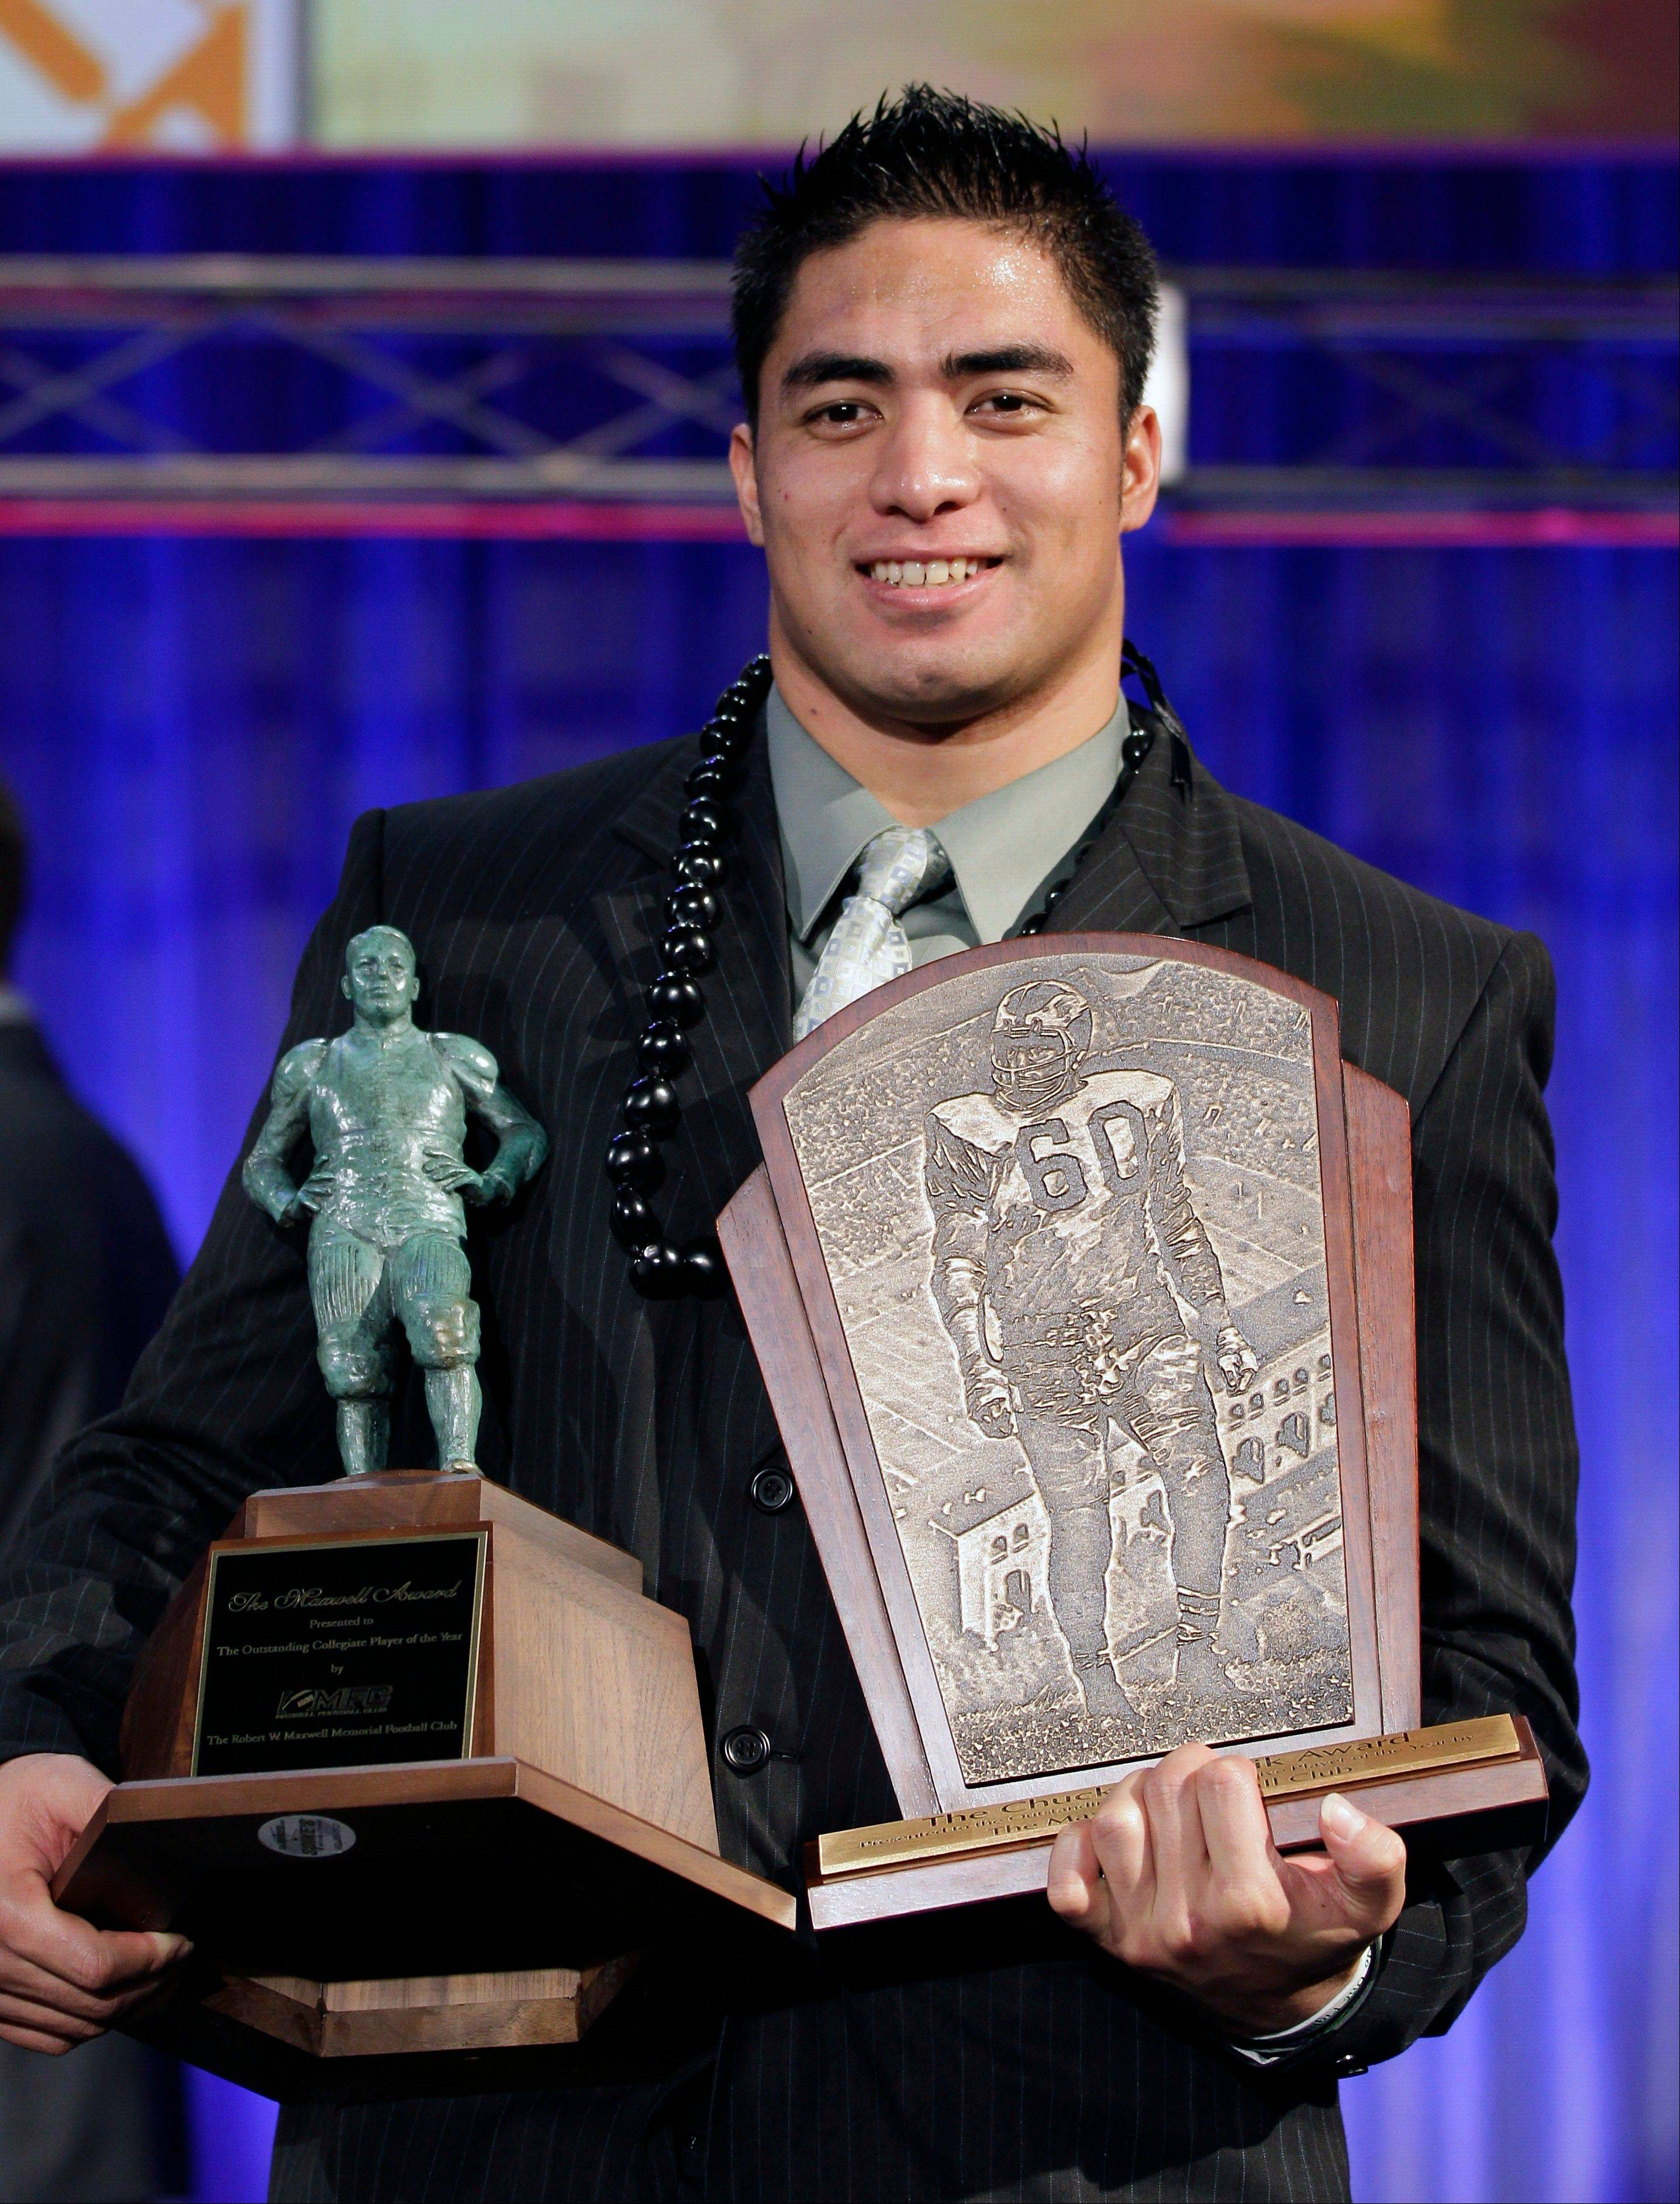 Notre Dame defensive back Manti Te'o displays his trophies after being named the college defensive player of the year and the nation's college player of the year Thursday at the Home Depot College Football Awards in Lake Buena Vista, Fla.